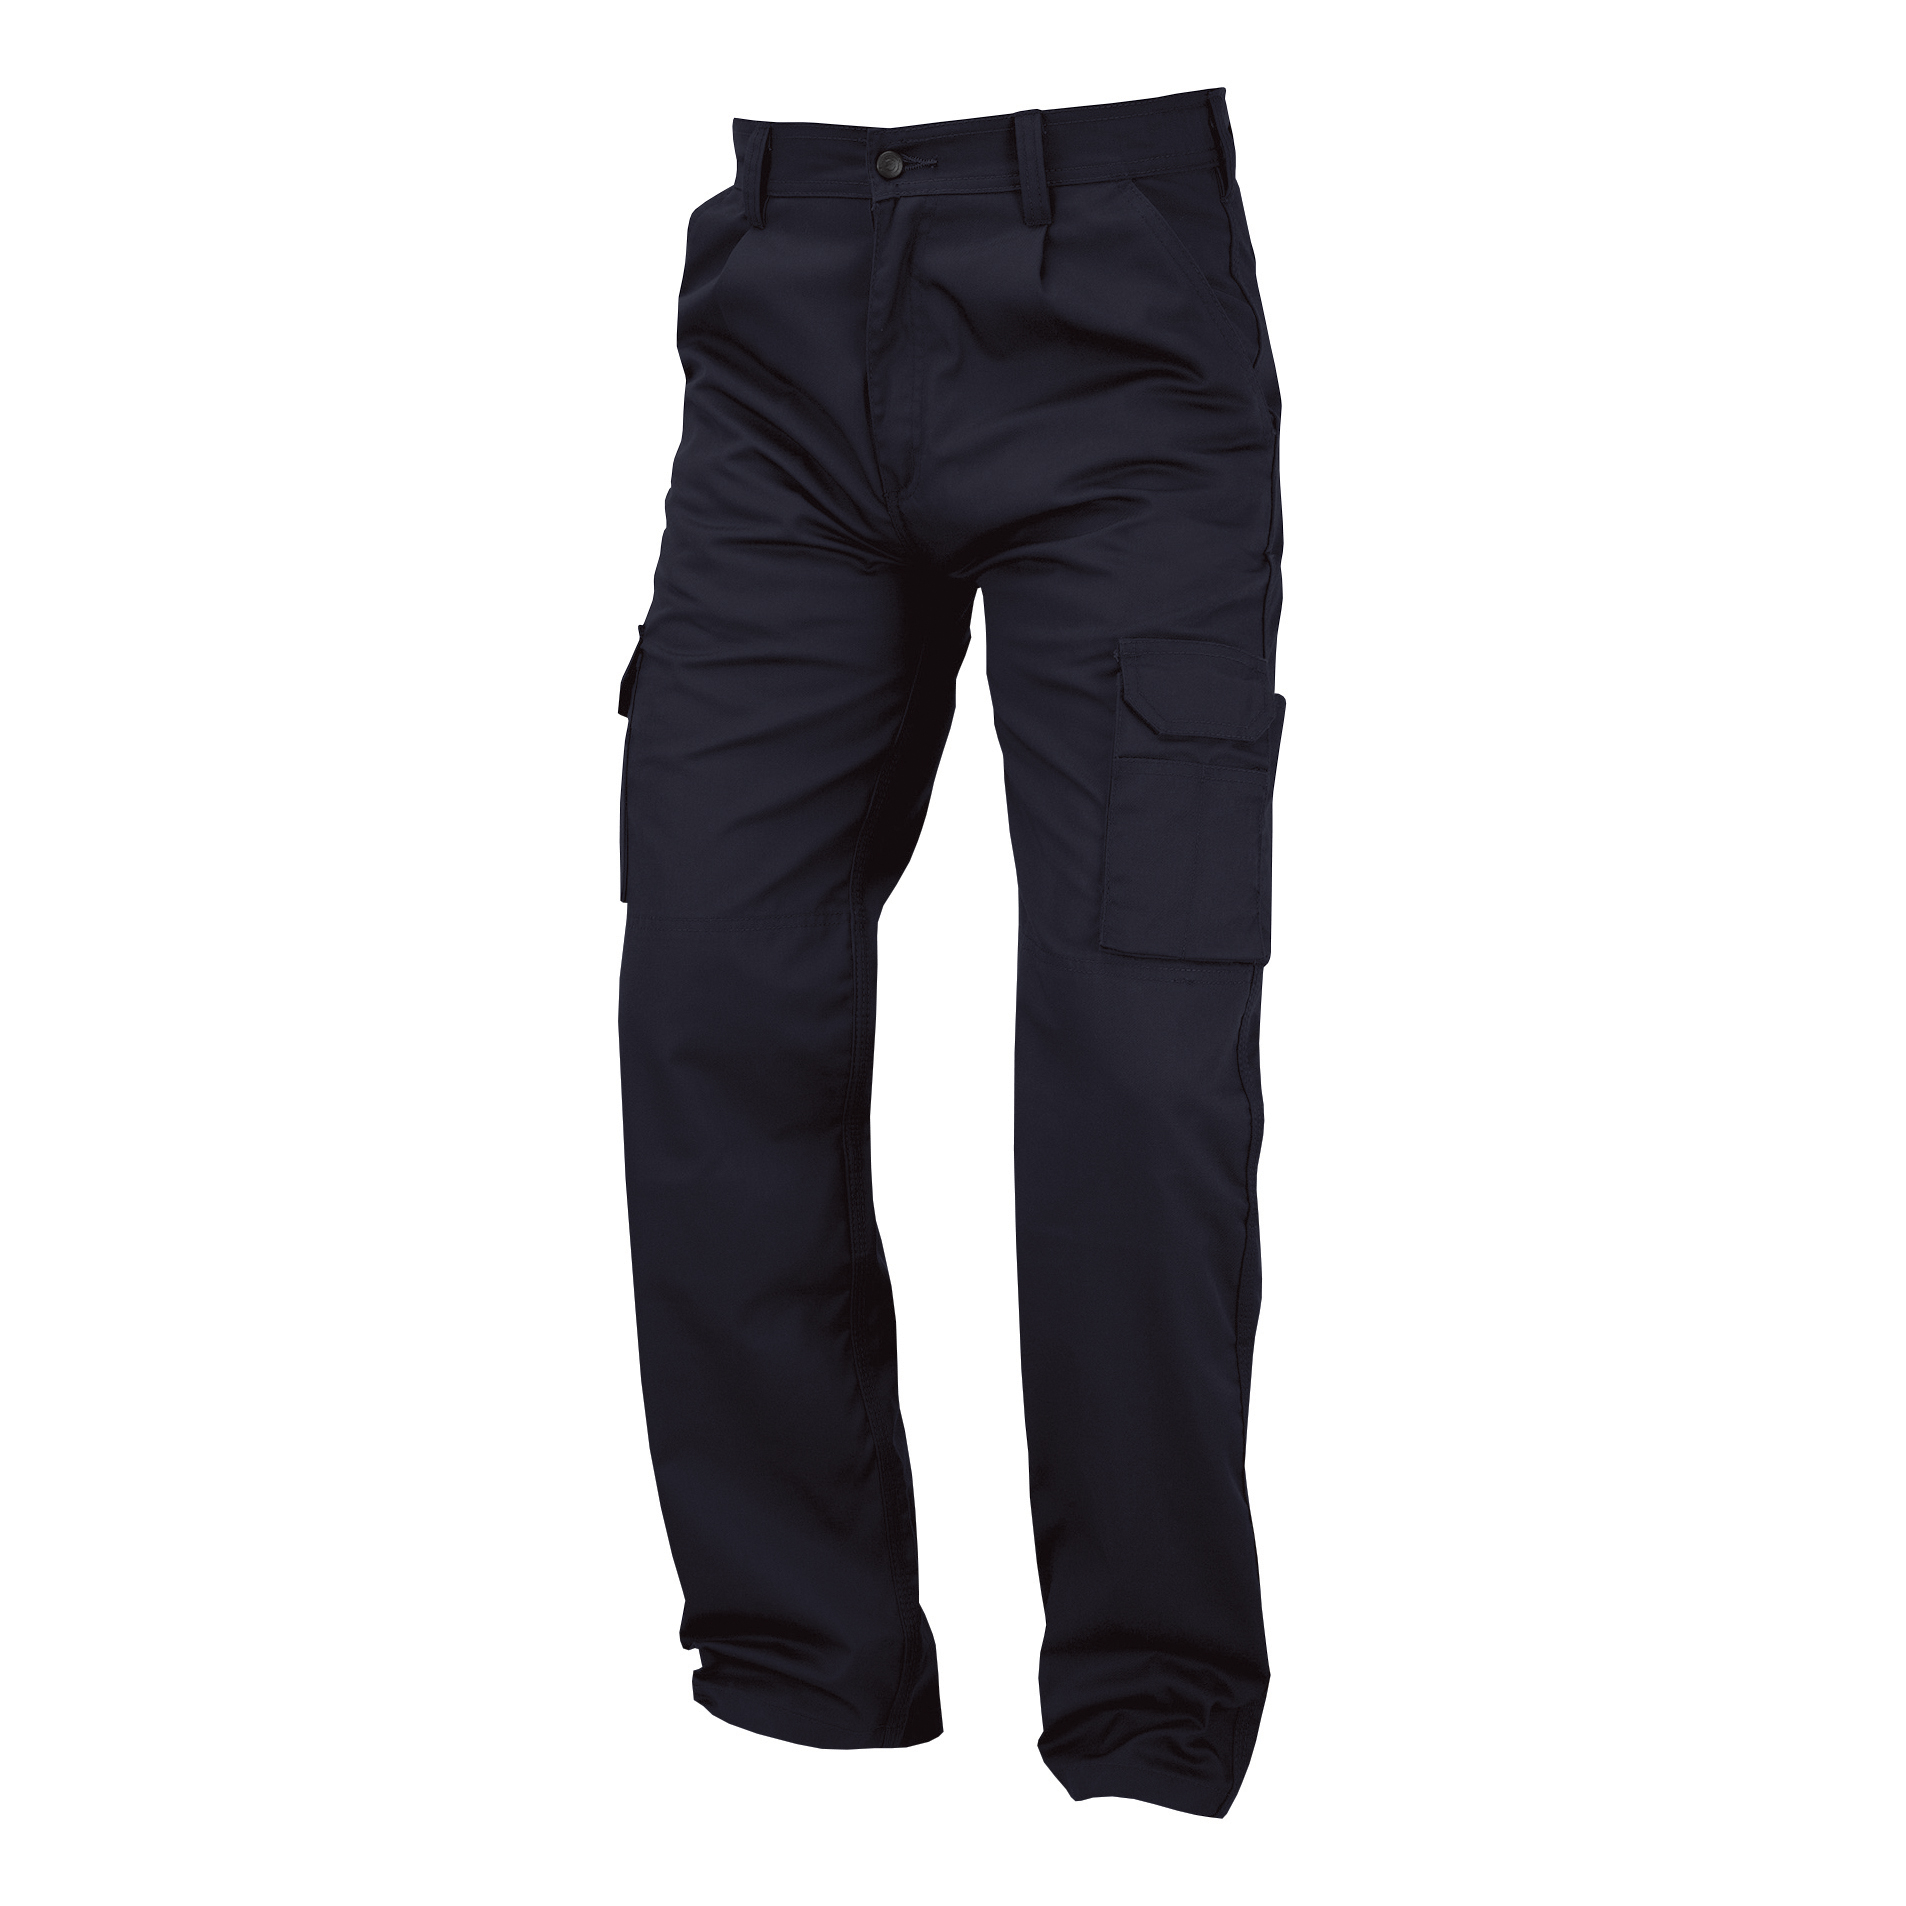 Business Kneepad Combat Trouser Multi-functional Waist 32in Leg 29in Navy